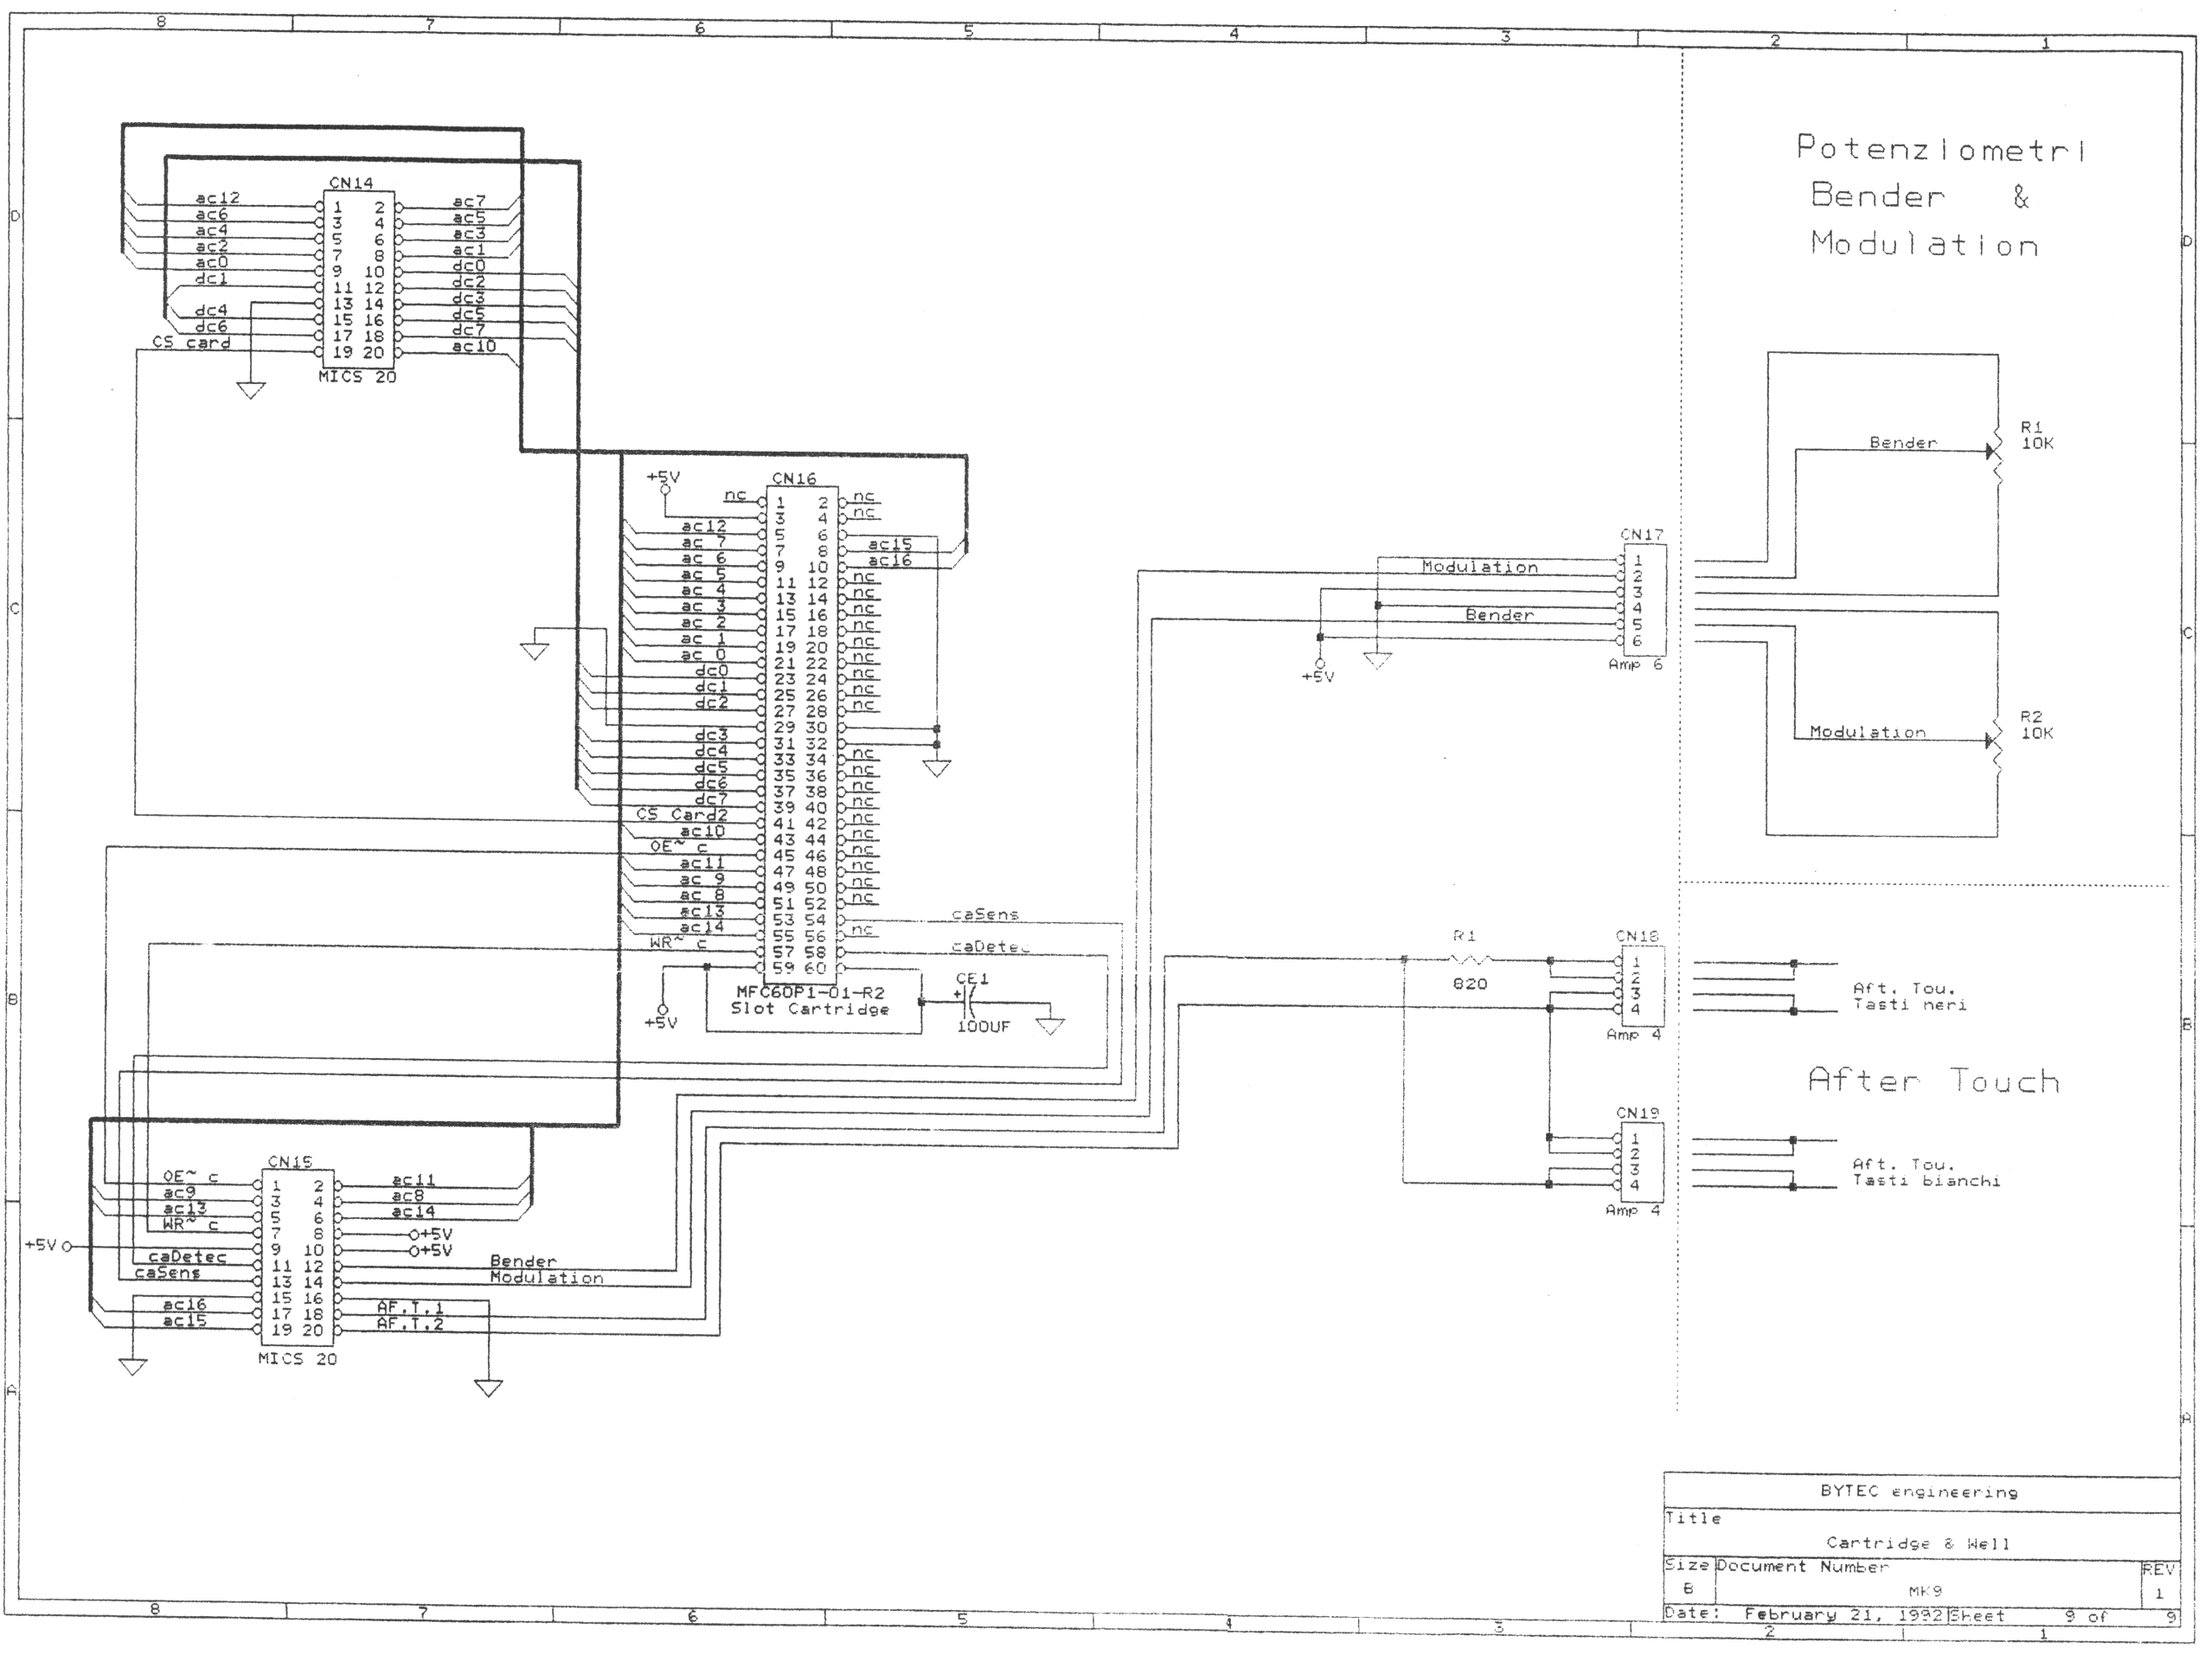 john pallister s lmk3 page shows the connections to the aftertouch sensors